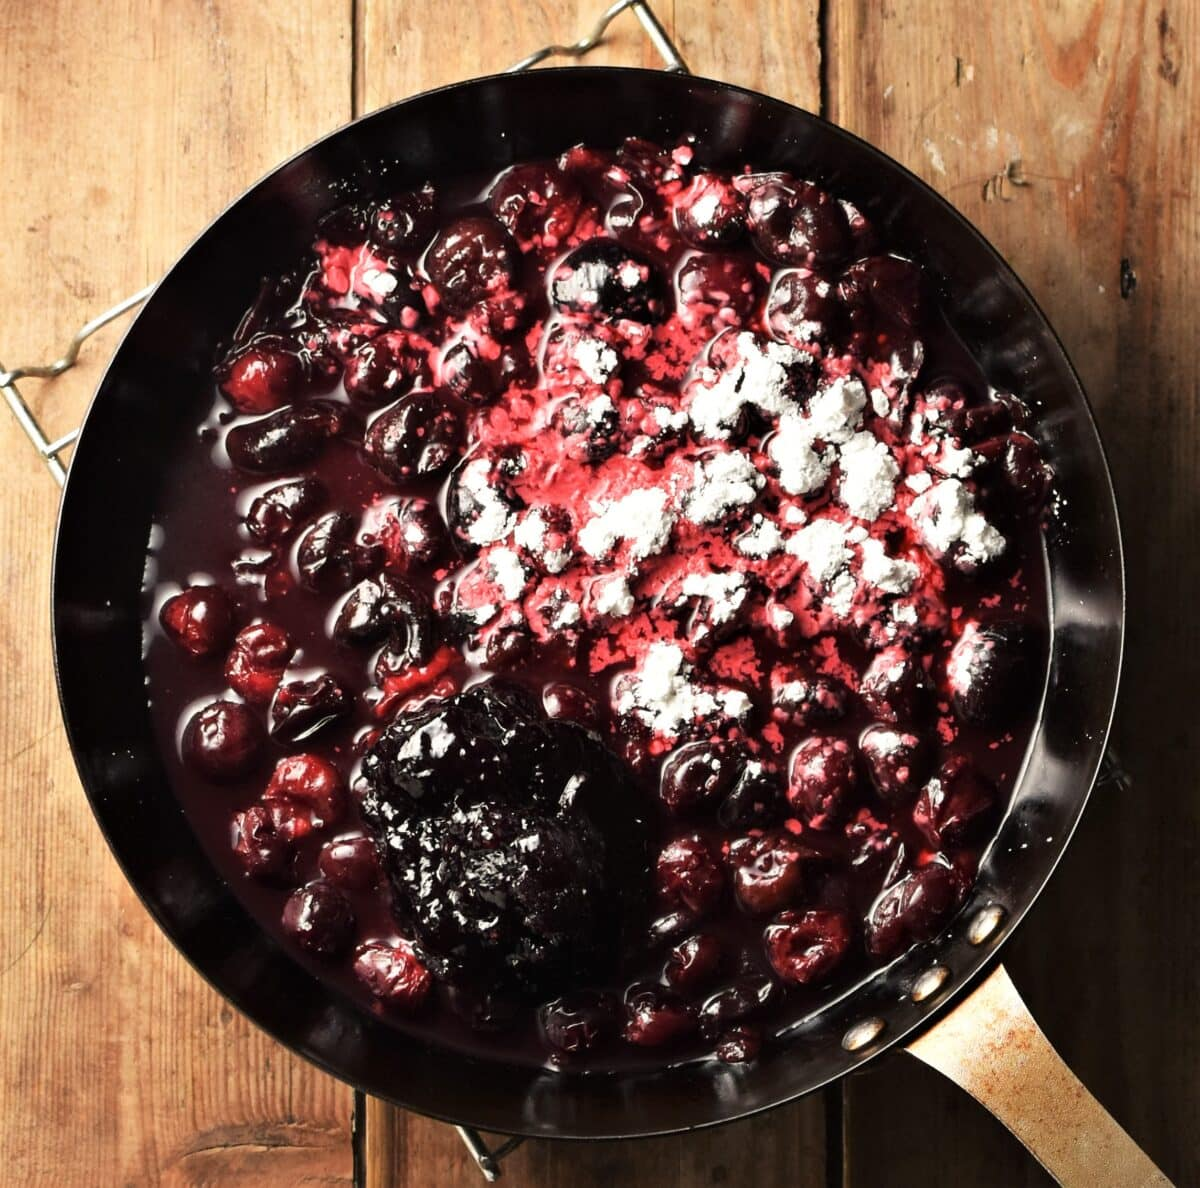 Cherry compote with flour in skillet.